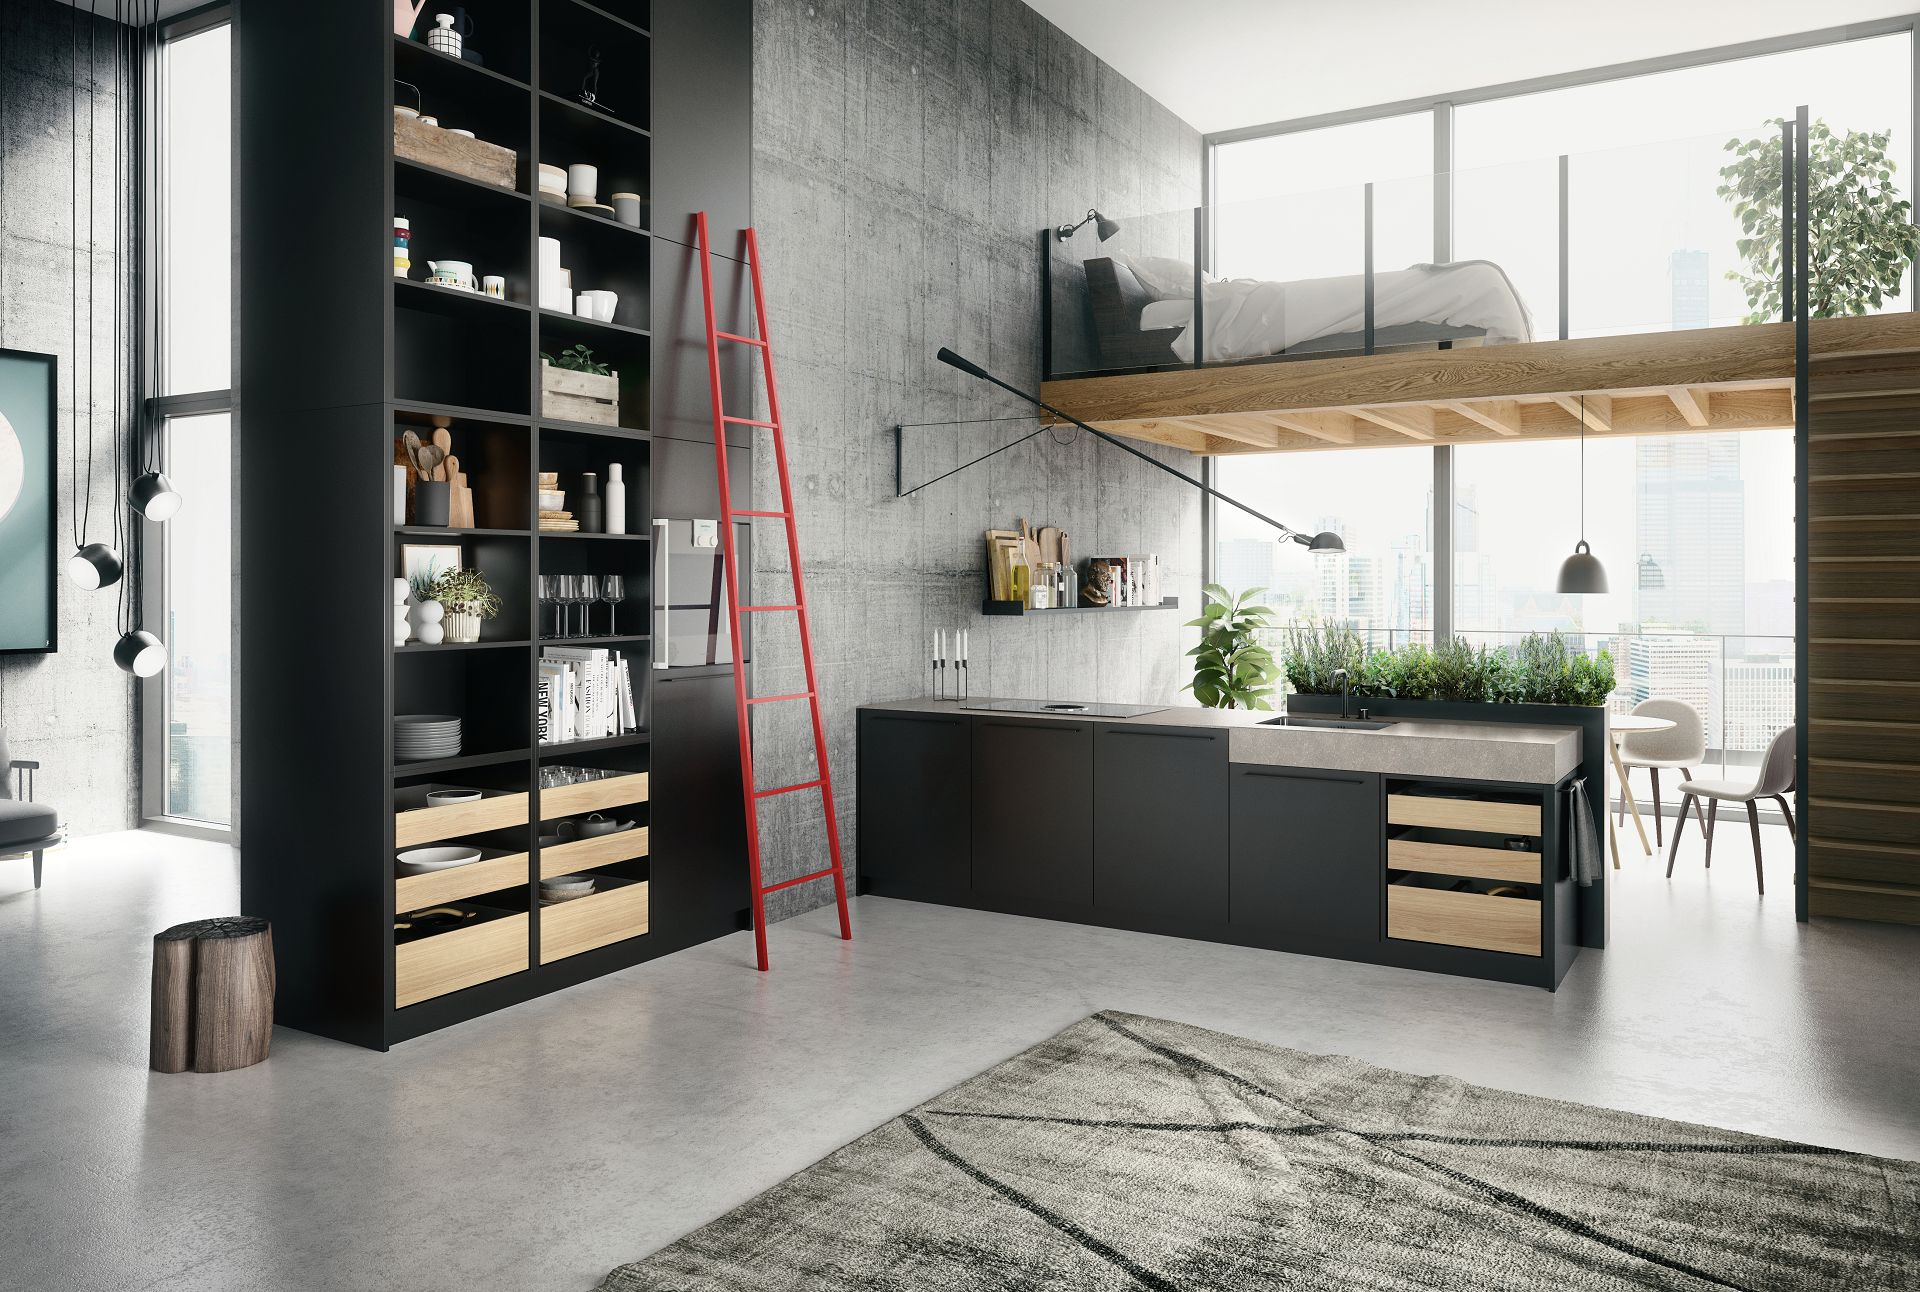 Small but Powerful Ideas for Urban Kitchen Design